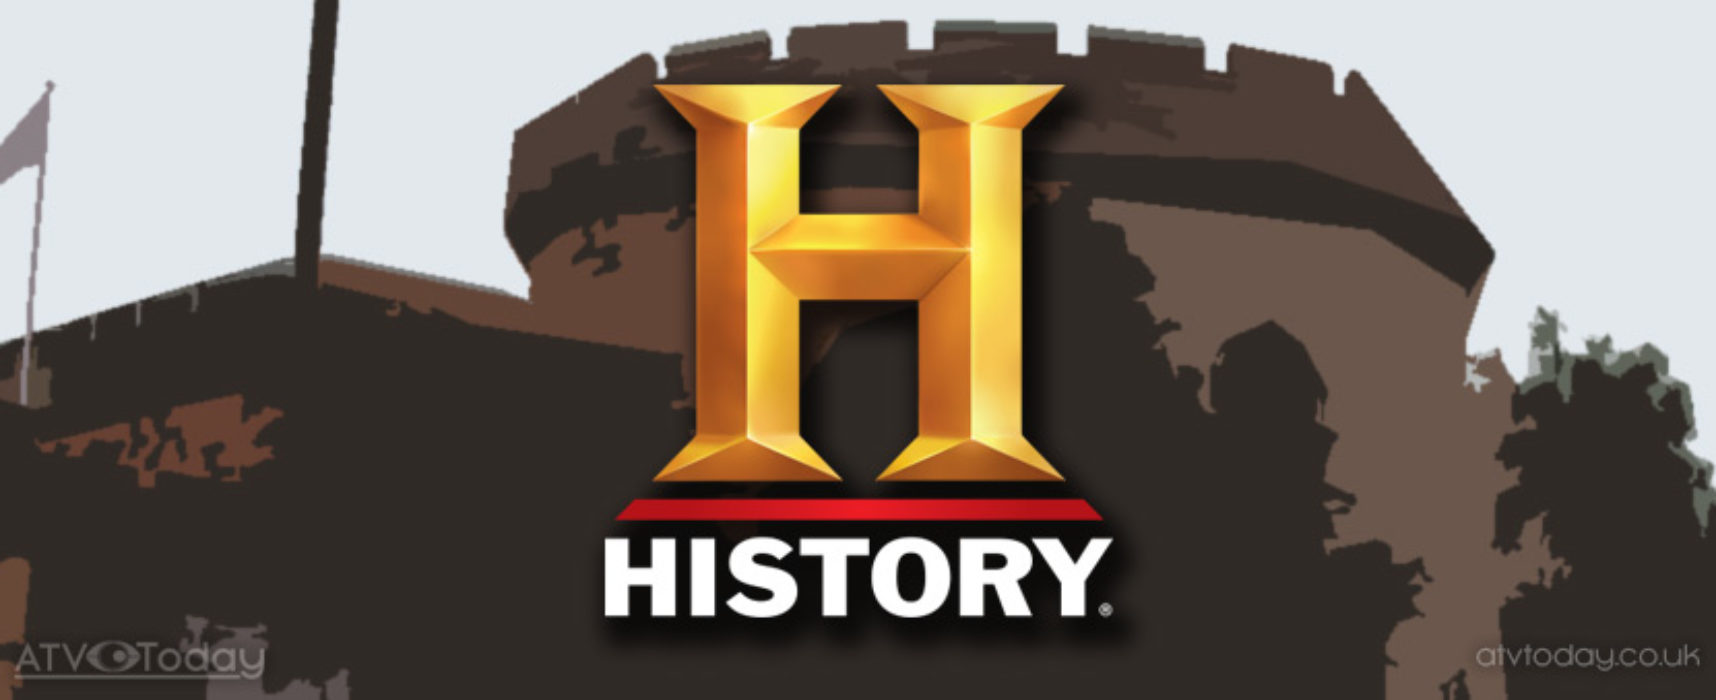 History2 channel expands coverage in Hungary